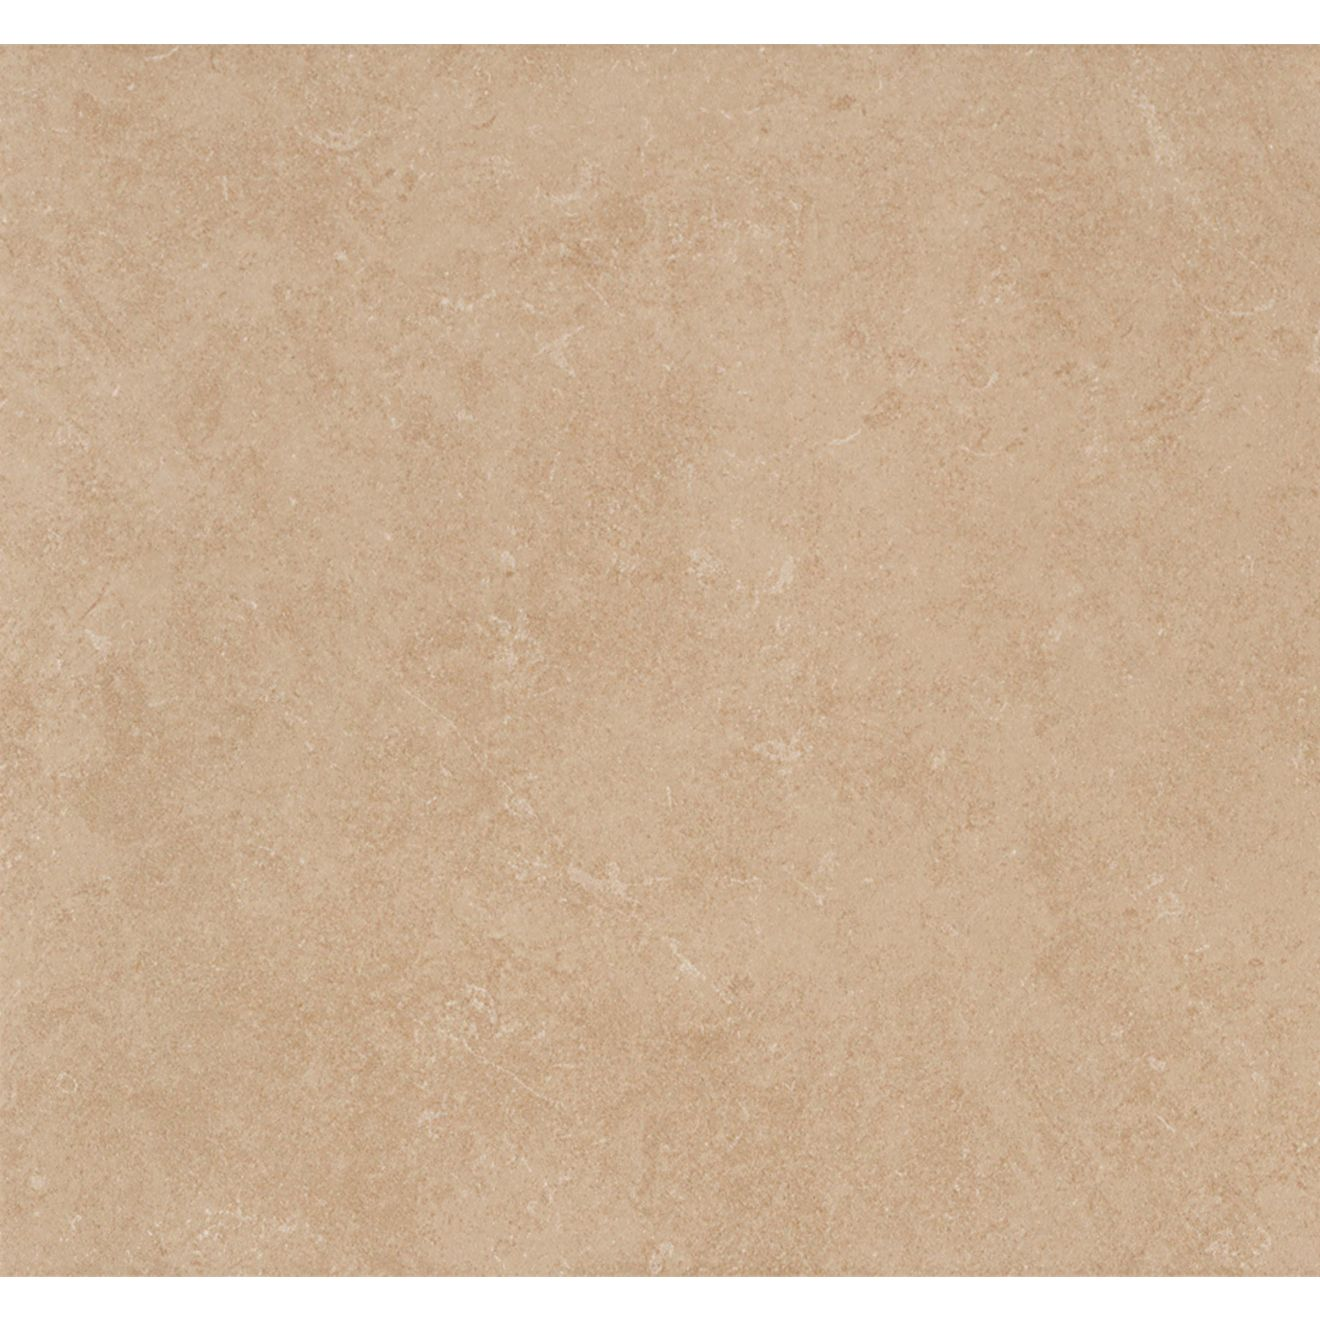 "Ararat 12""x12"" Porcelain Floor & Wall Tile in Beige"